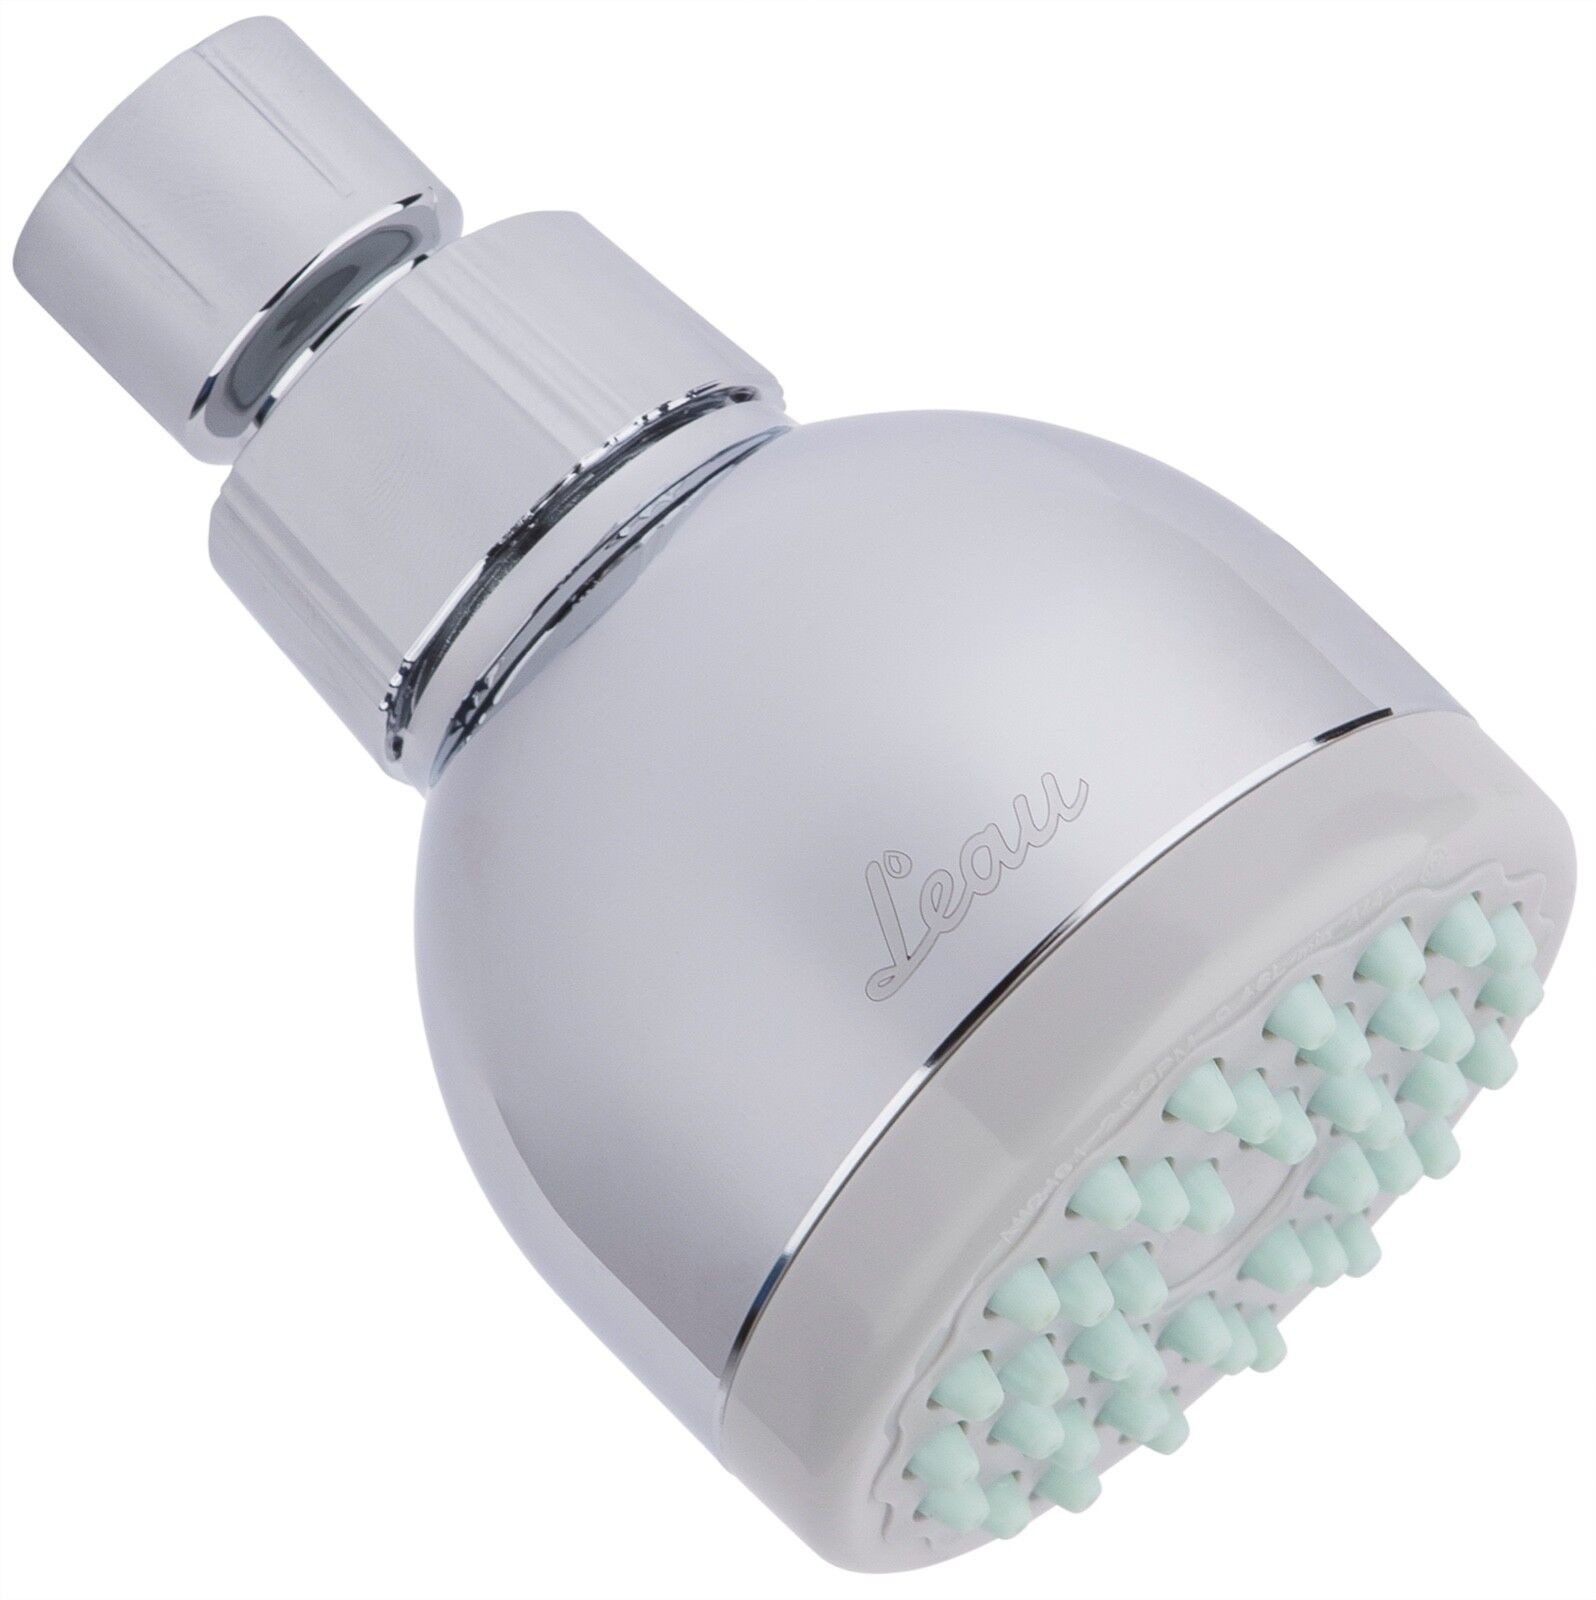 3 Inch High Pressure Shower Head with removed flow restricto